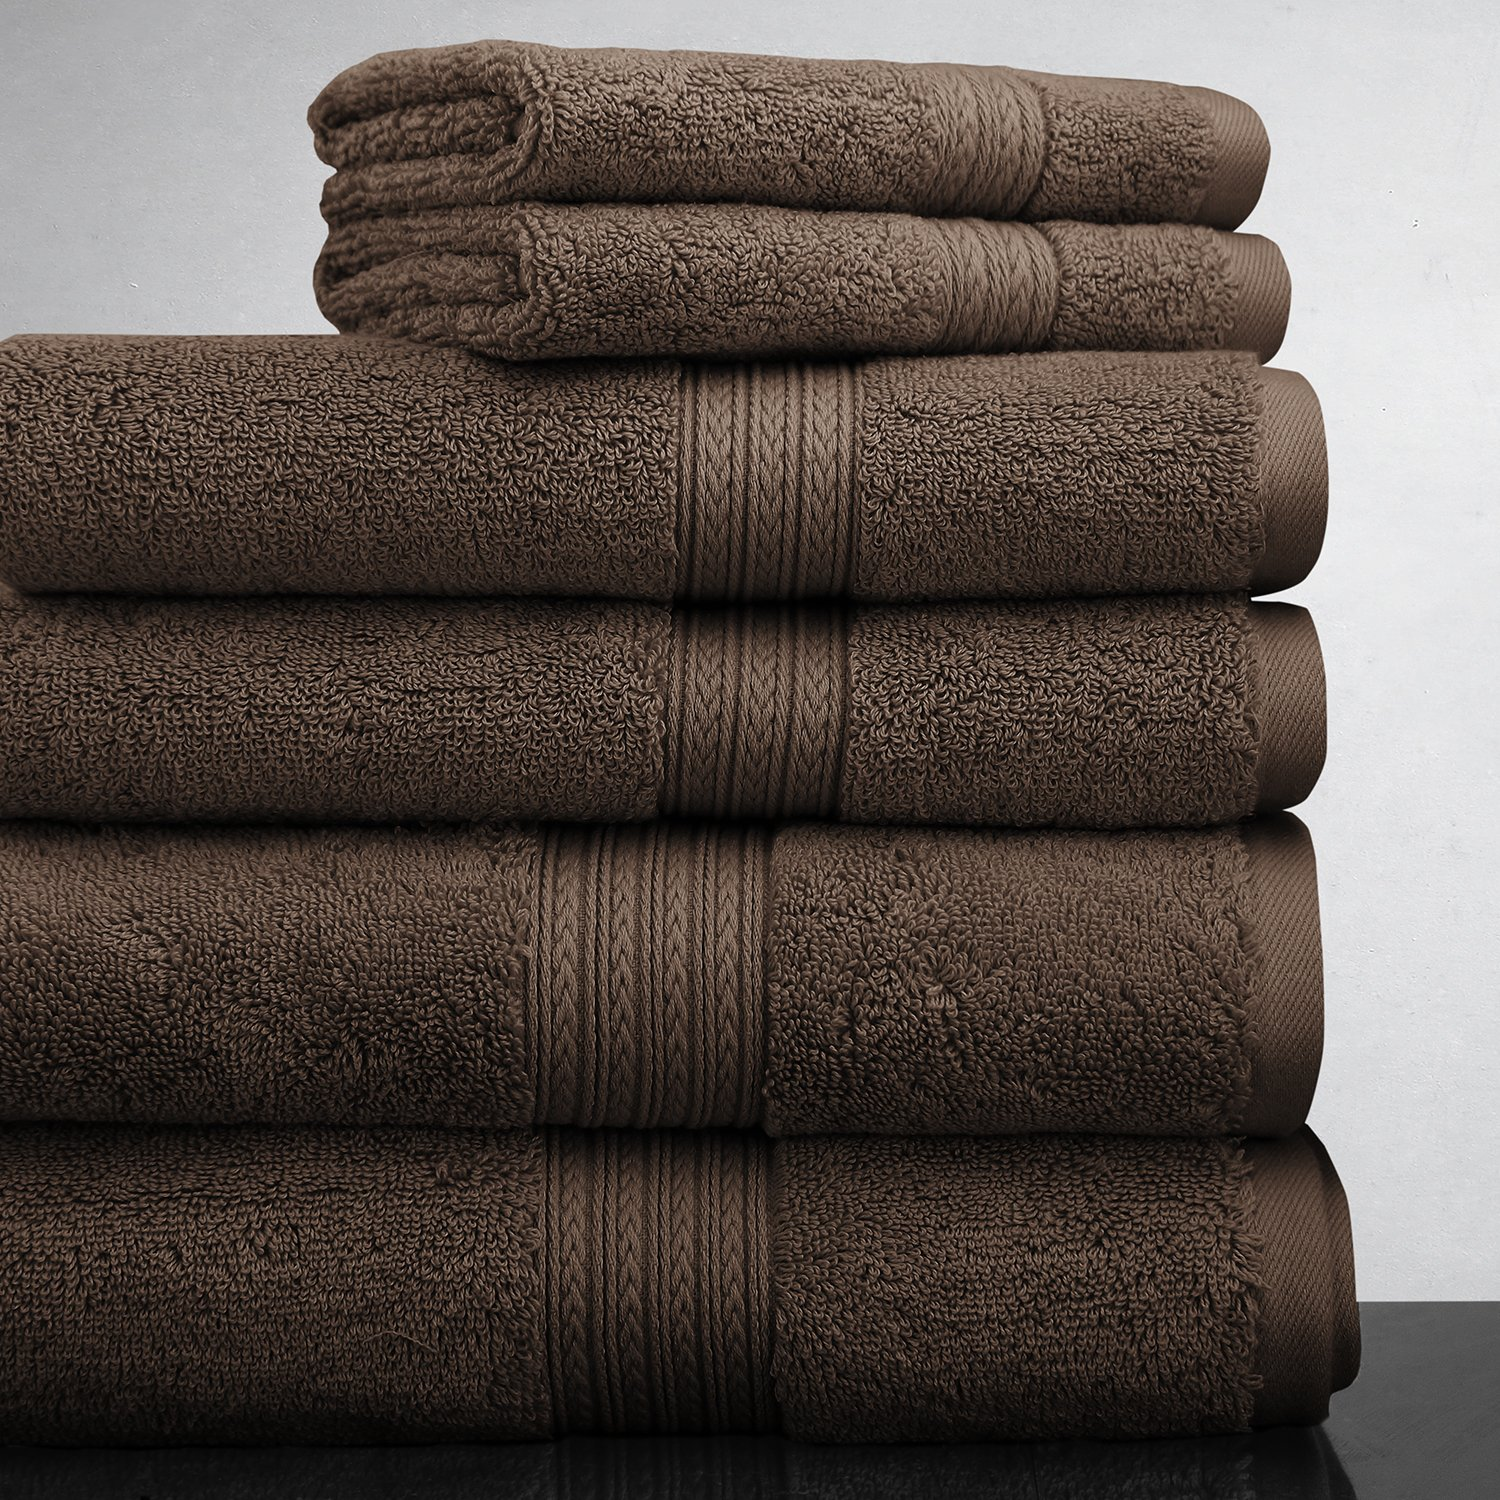 Luxor Linens New Arrival Bliss Collection Egyptian Cotton Classic 6-Piece Towel Set - Chocolate - with Gift Packaging by Luxor Linens (Image #1)